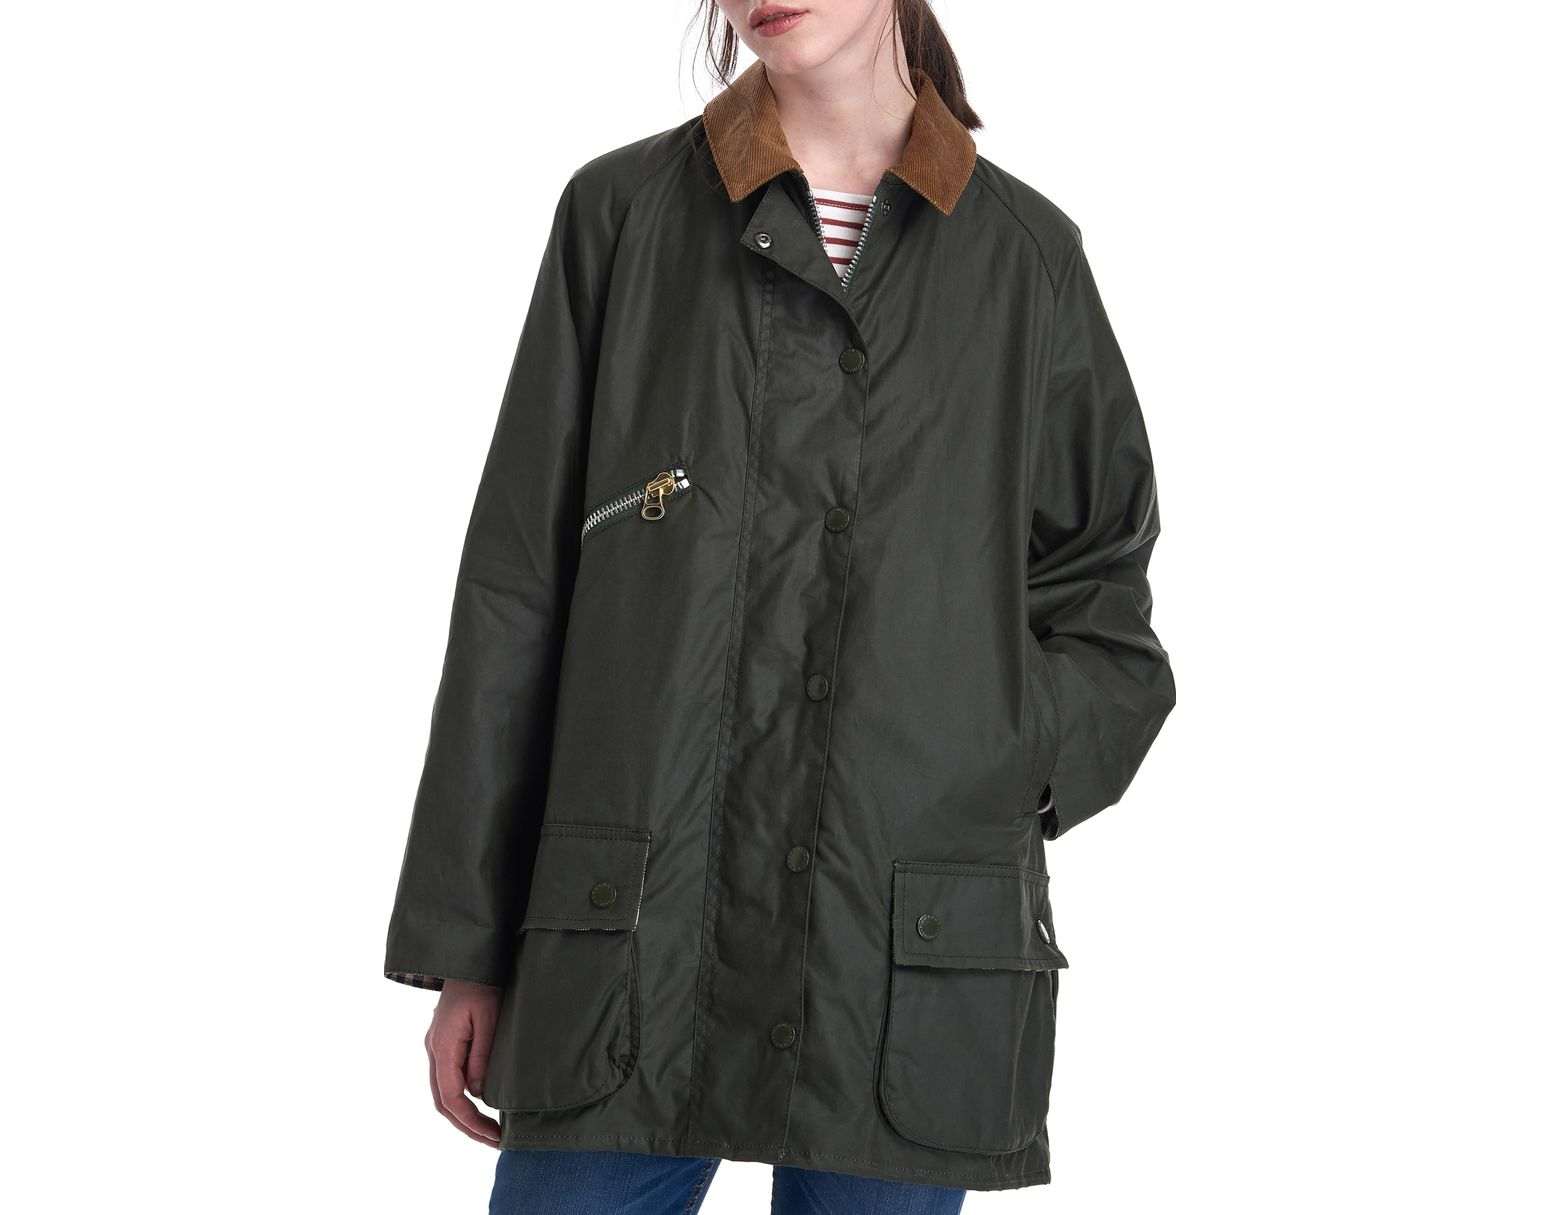 280a80e21 Barbour X Alexa Chung Edith Weatherproof Waxed Cotton Jacket in ...